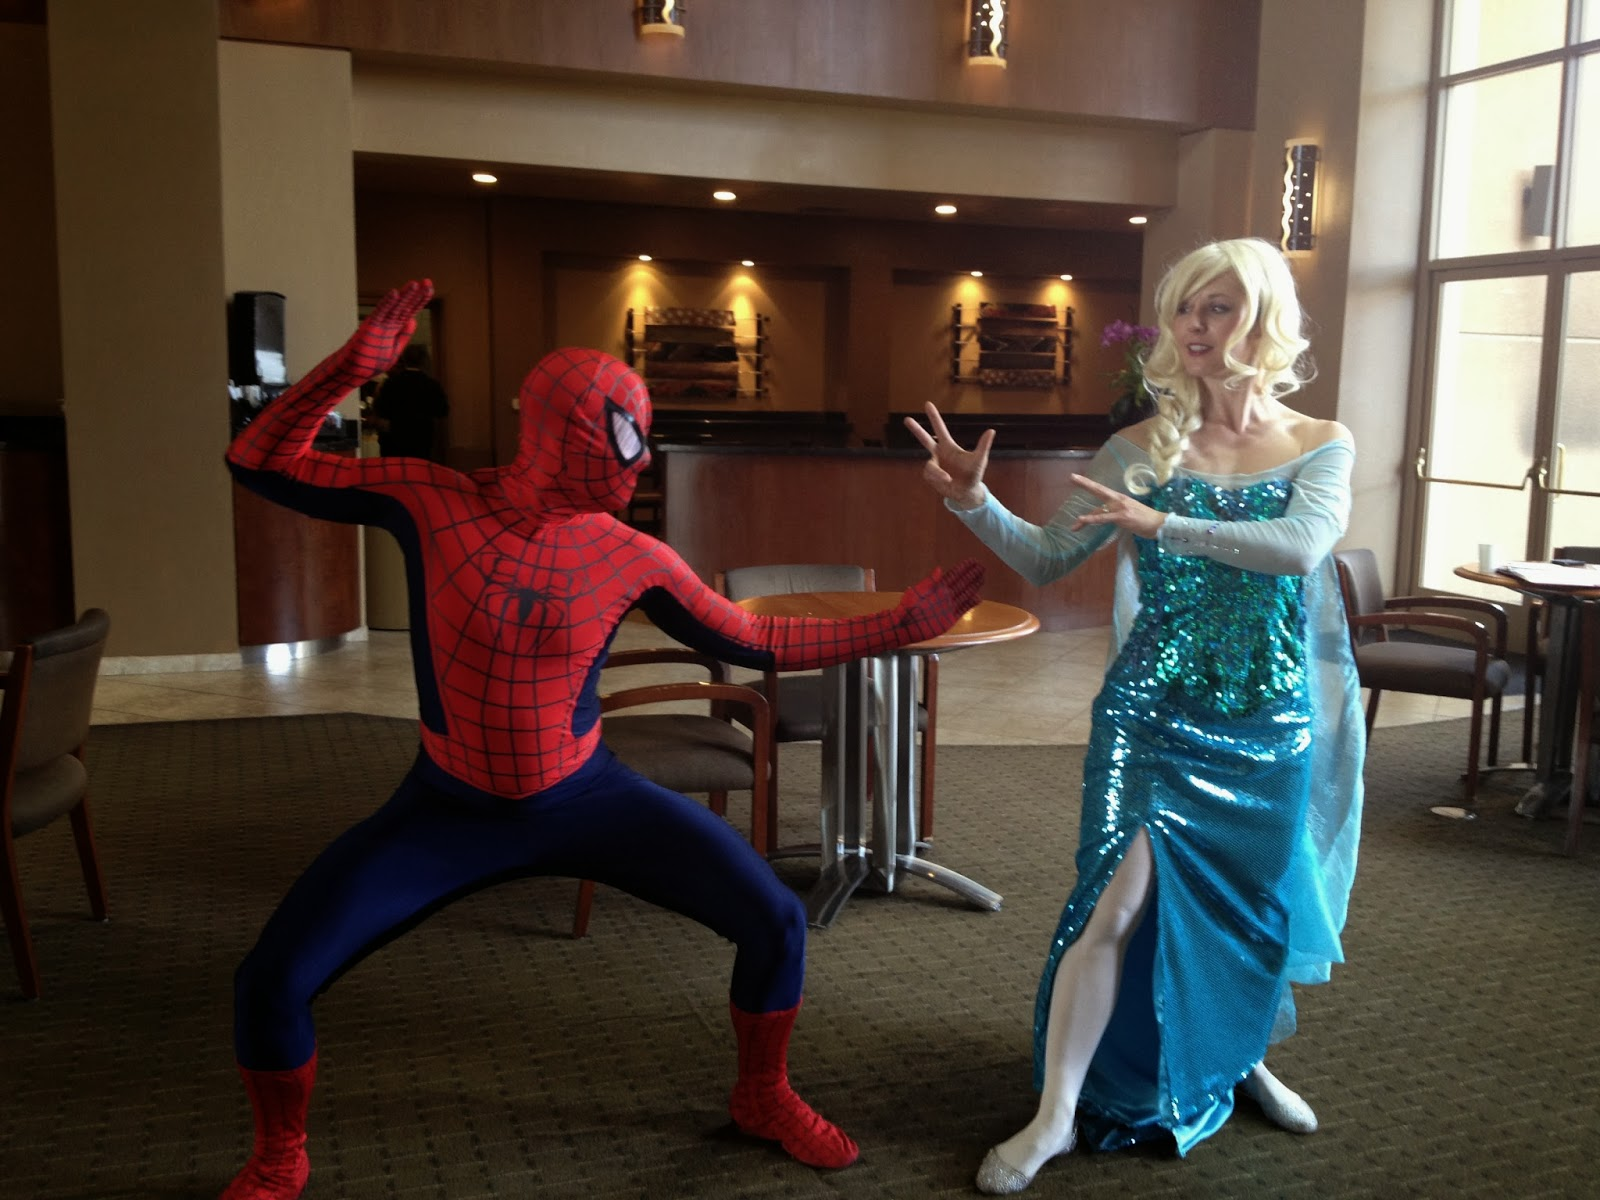 Spiderman and Frozen